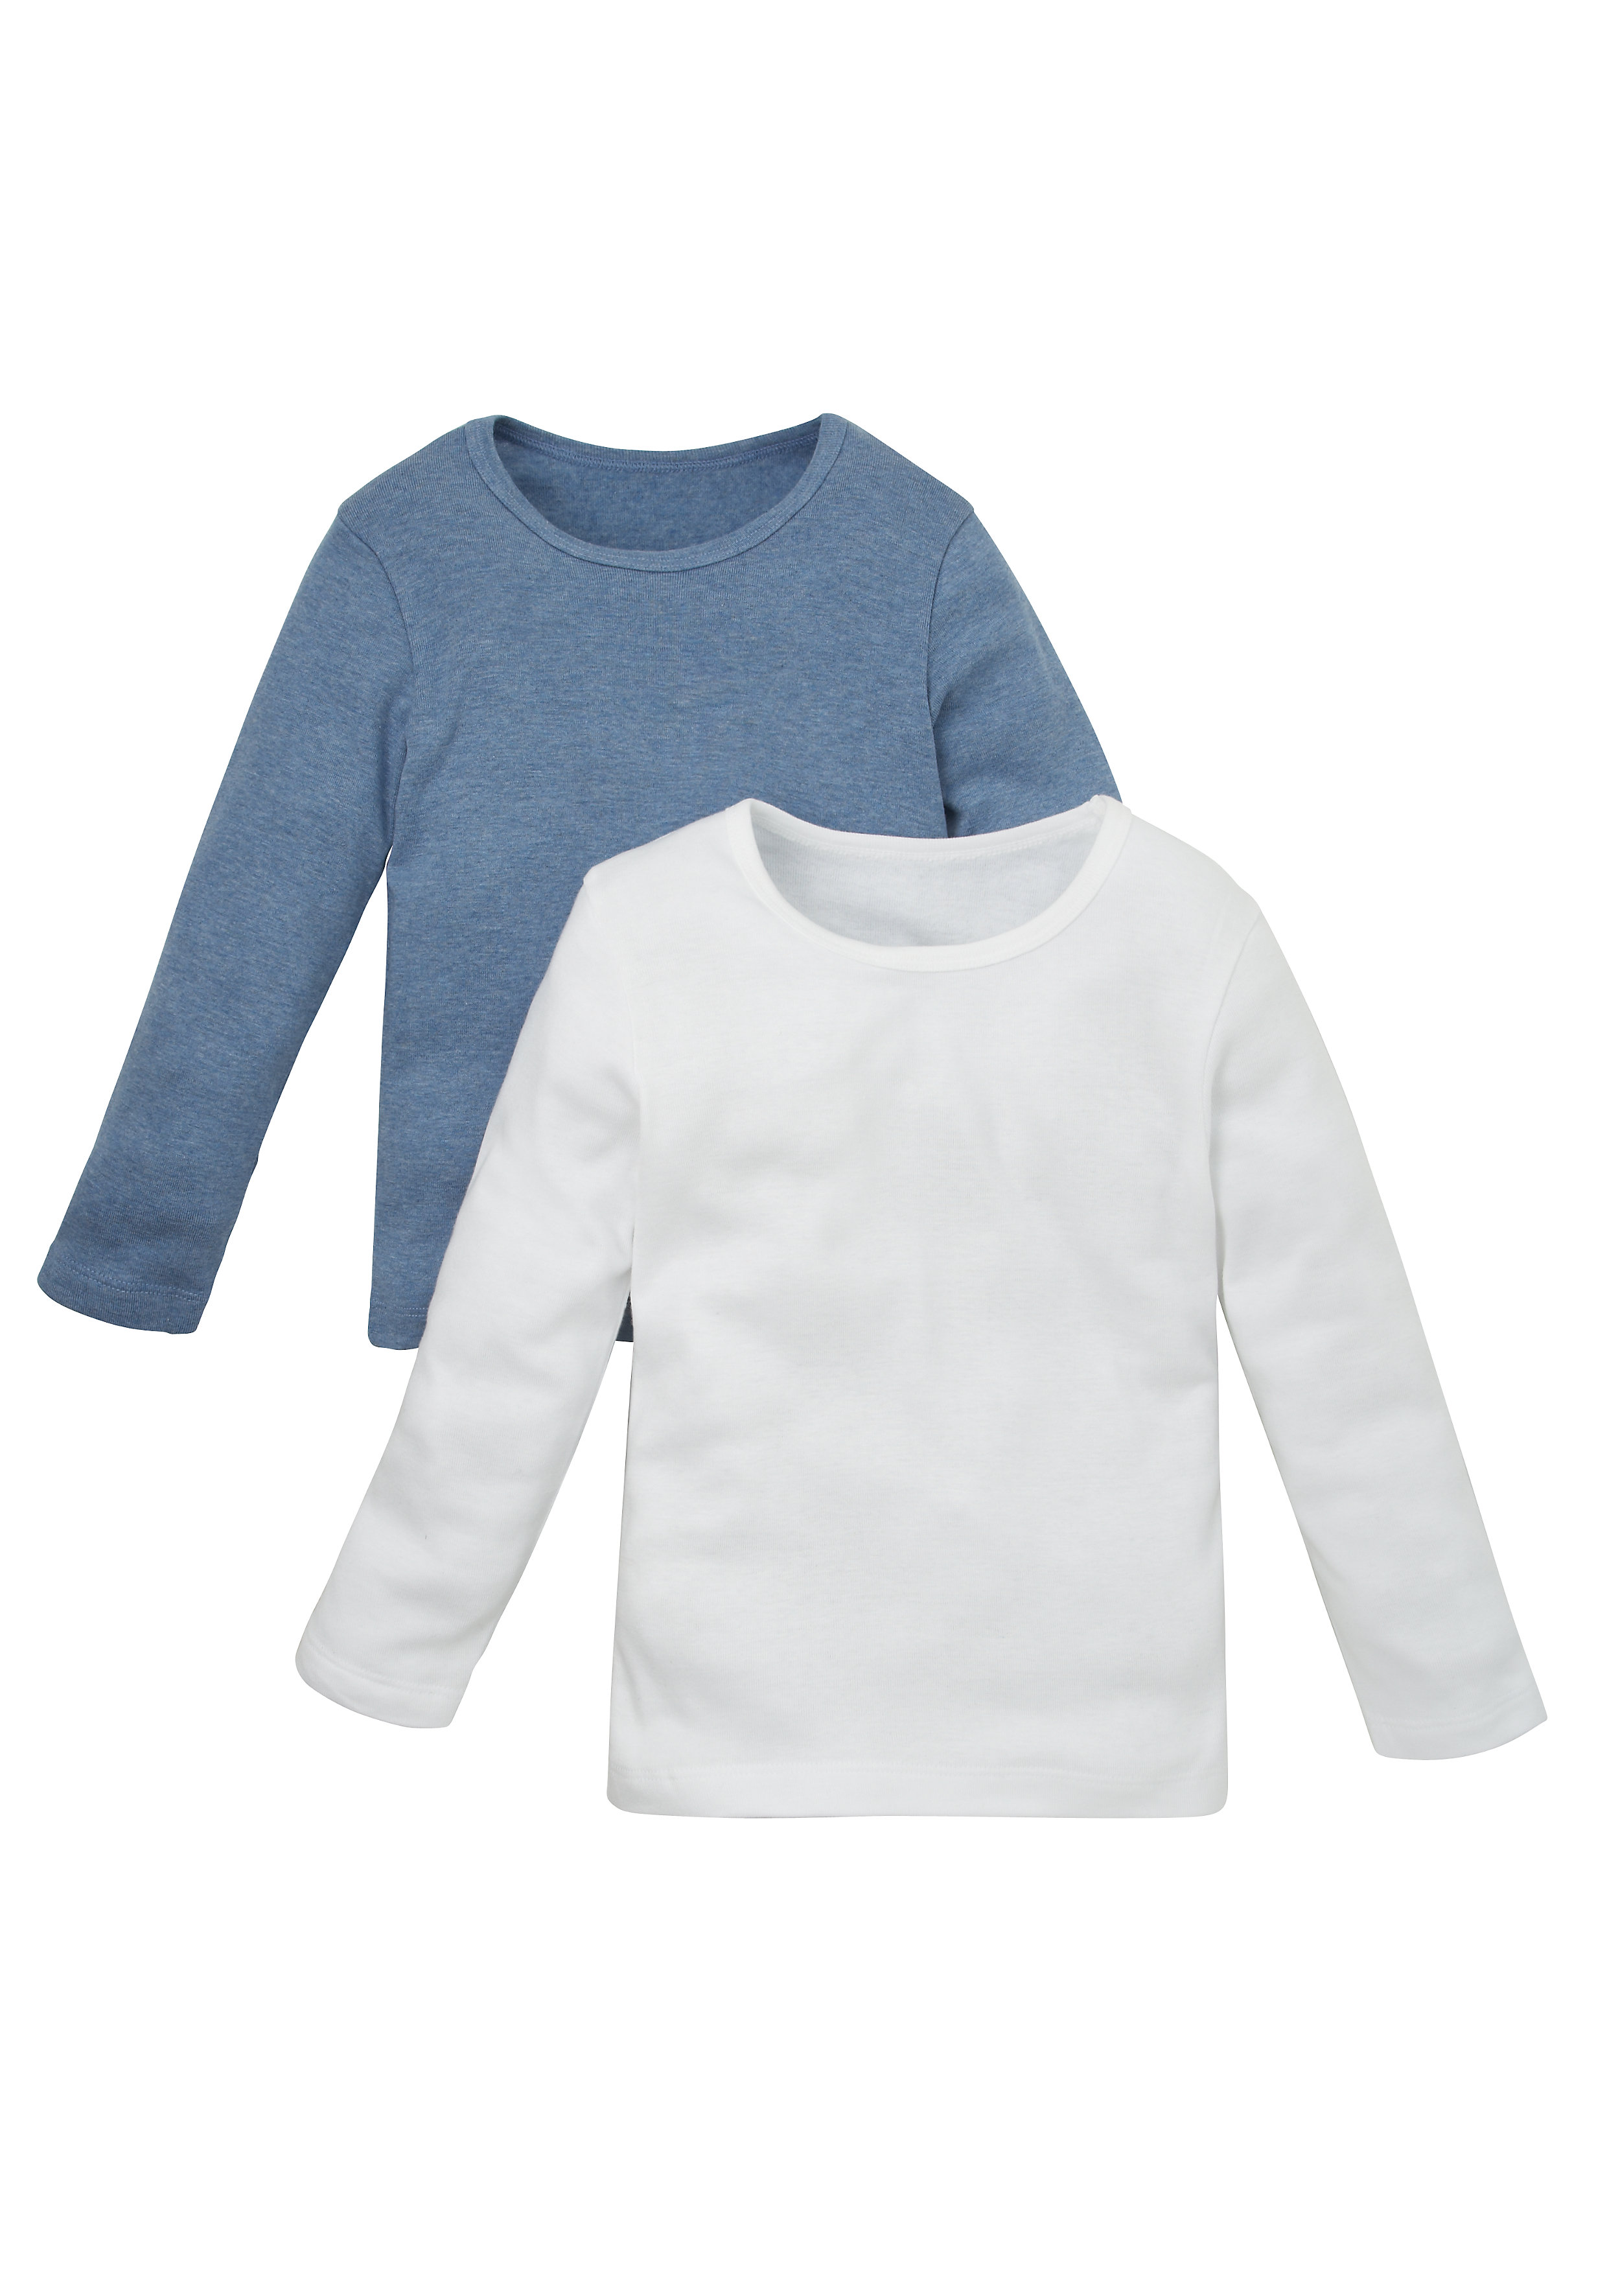 Mothercare   Boys Full Sleeves Thermal Vest  - Pack Of 2 - Multicolor